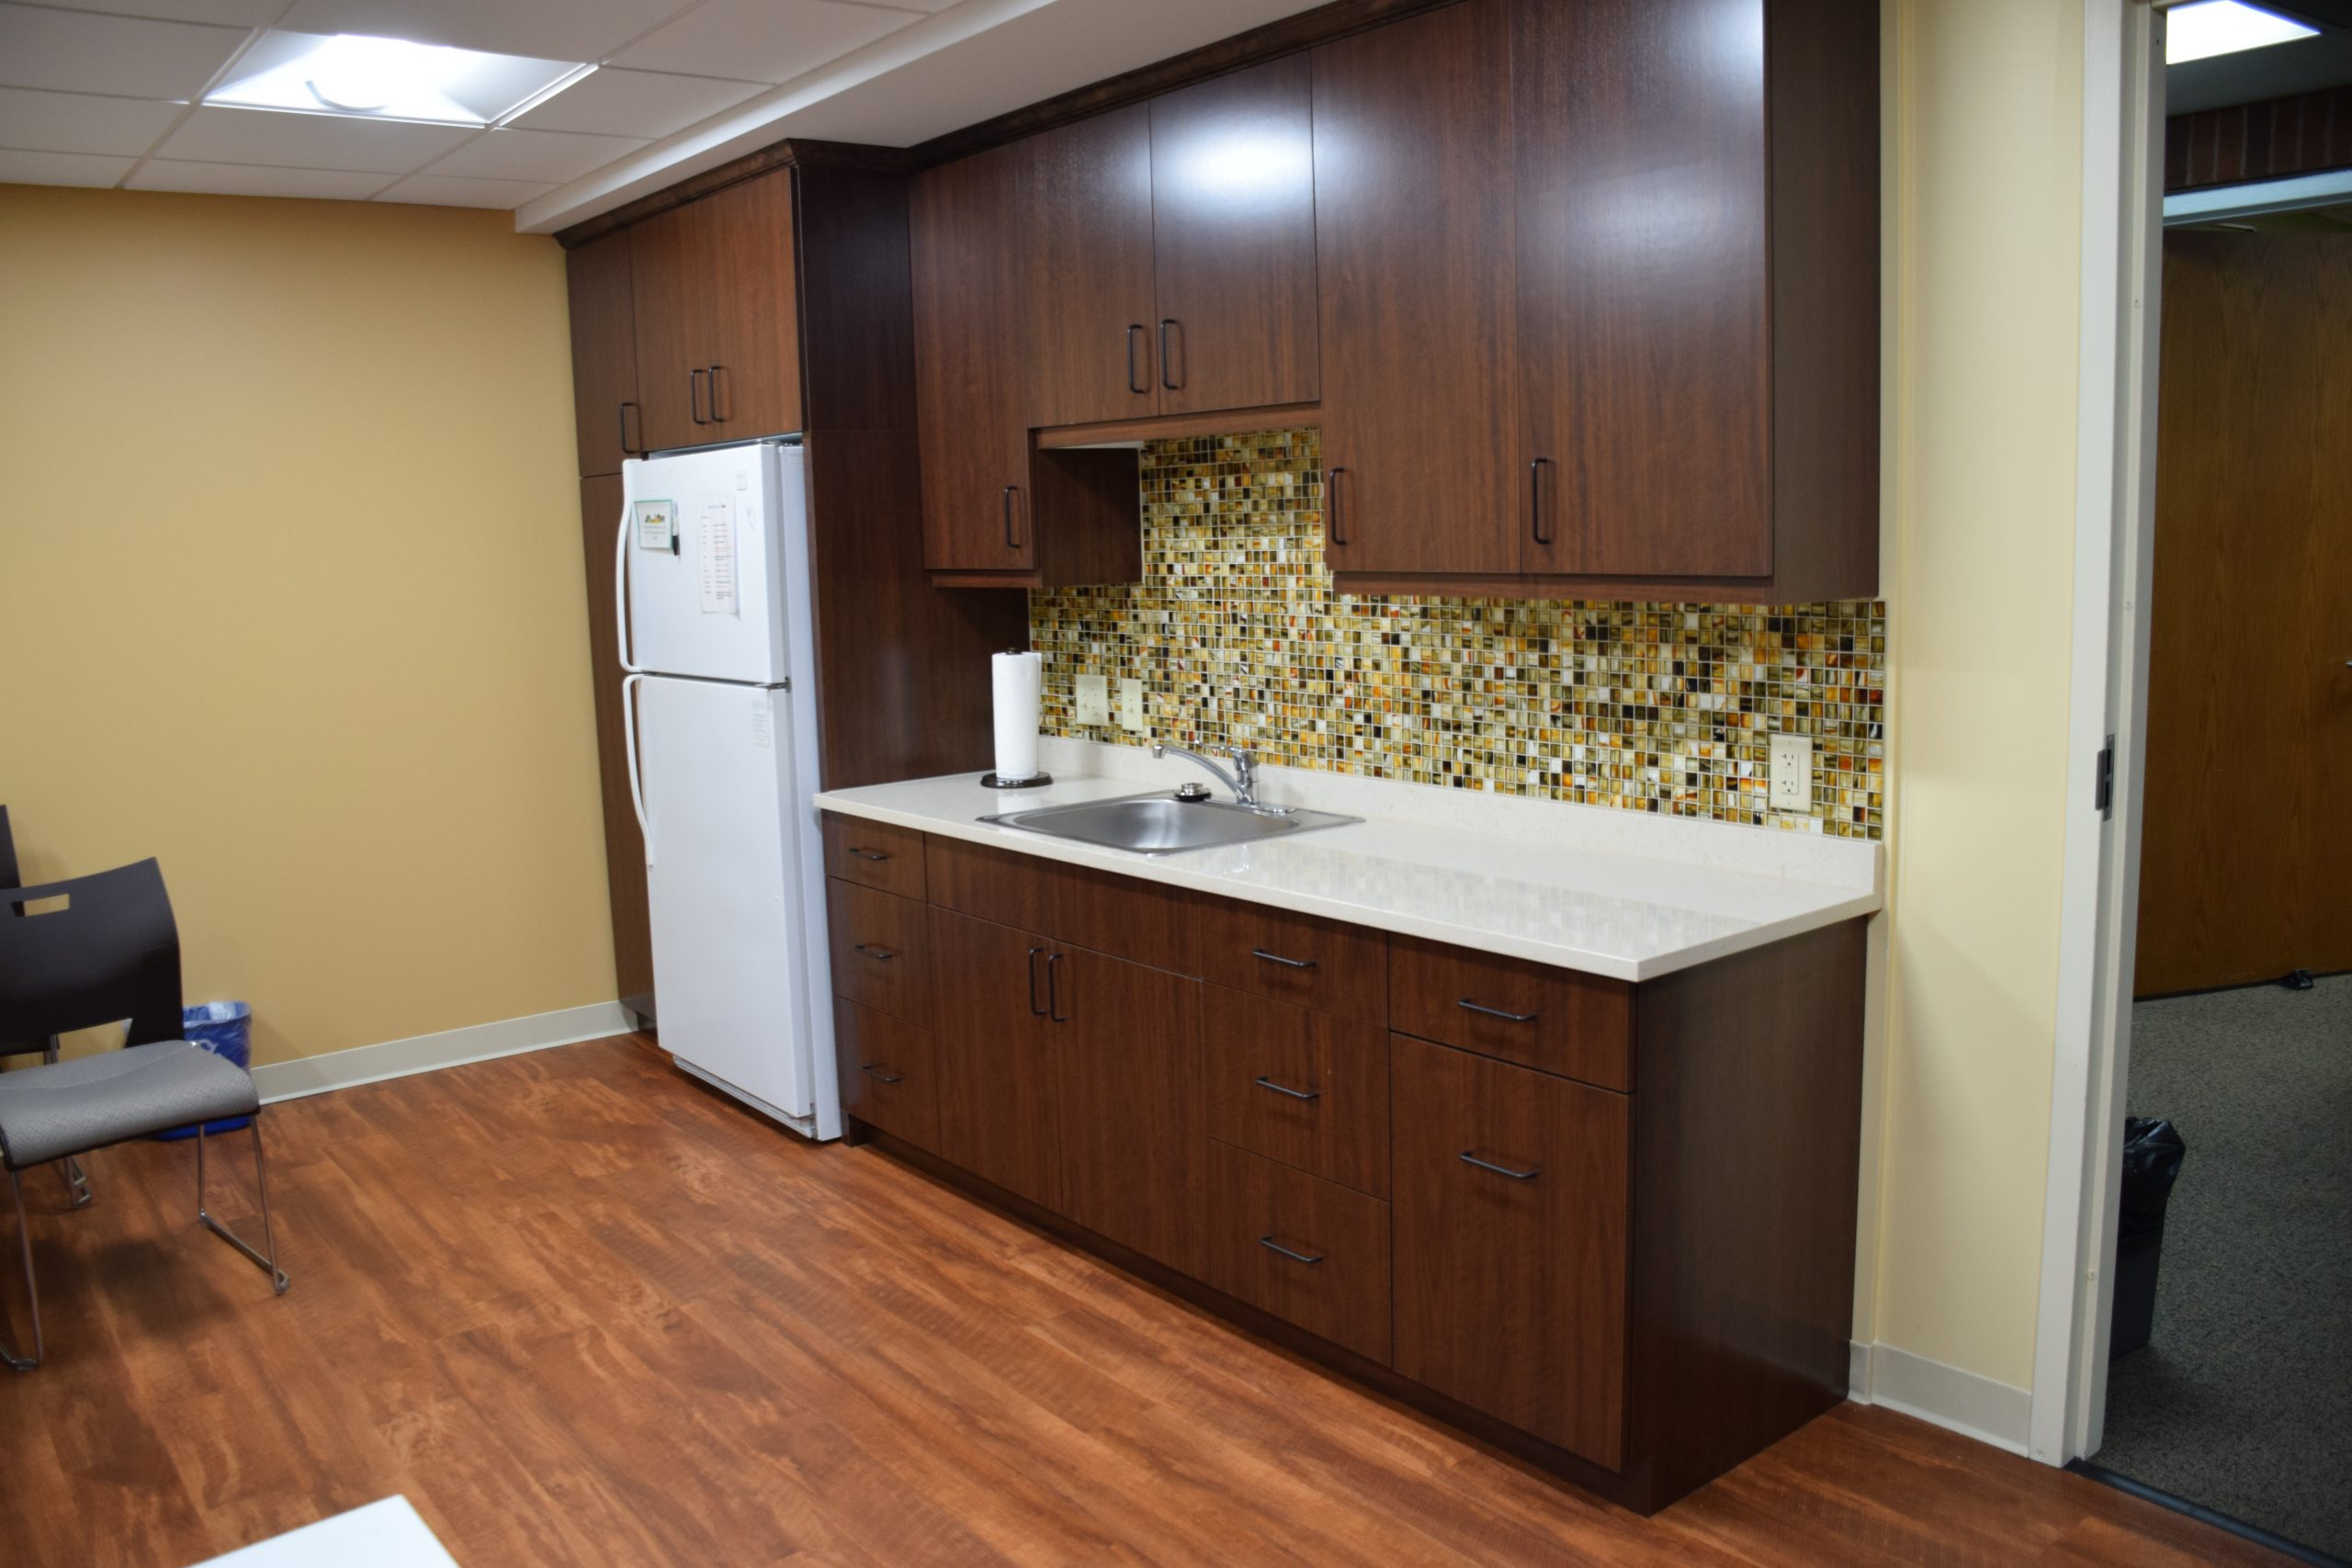 Pediatric kitchen area including custom cabinetry, refrigerator, sink, and colorful tile backsplash